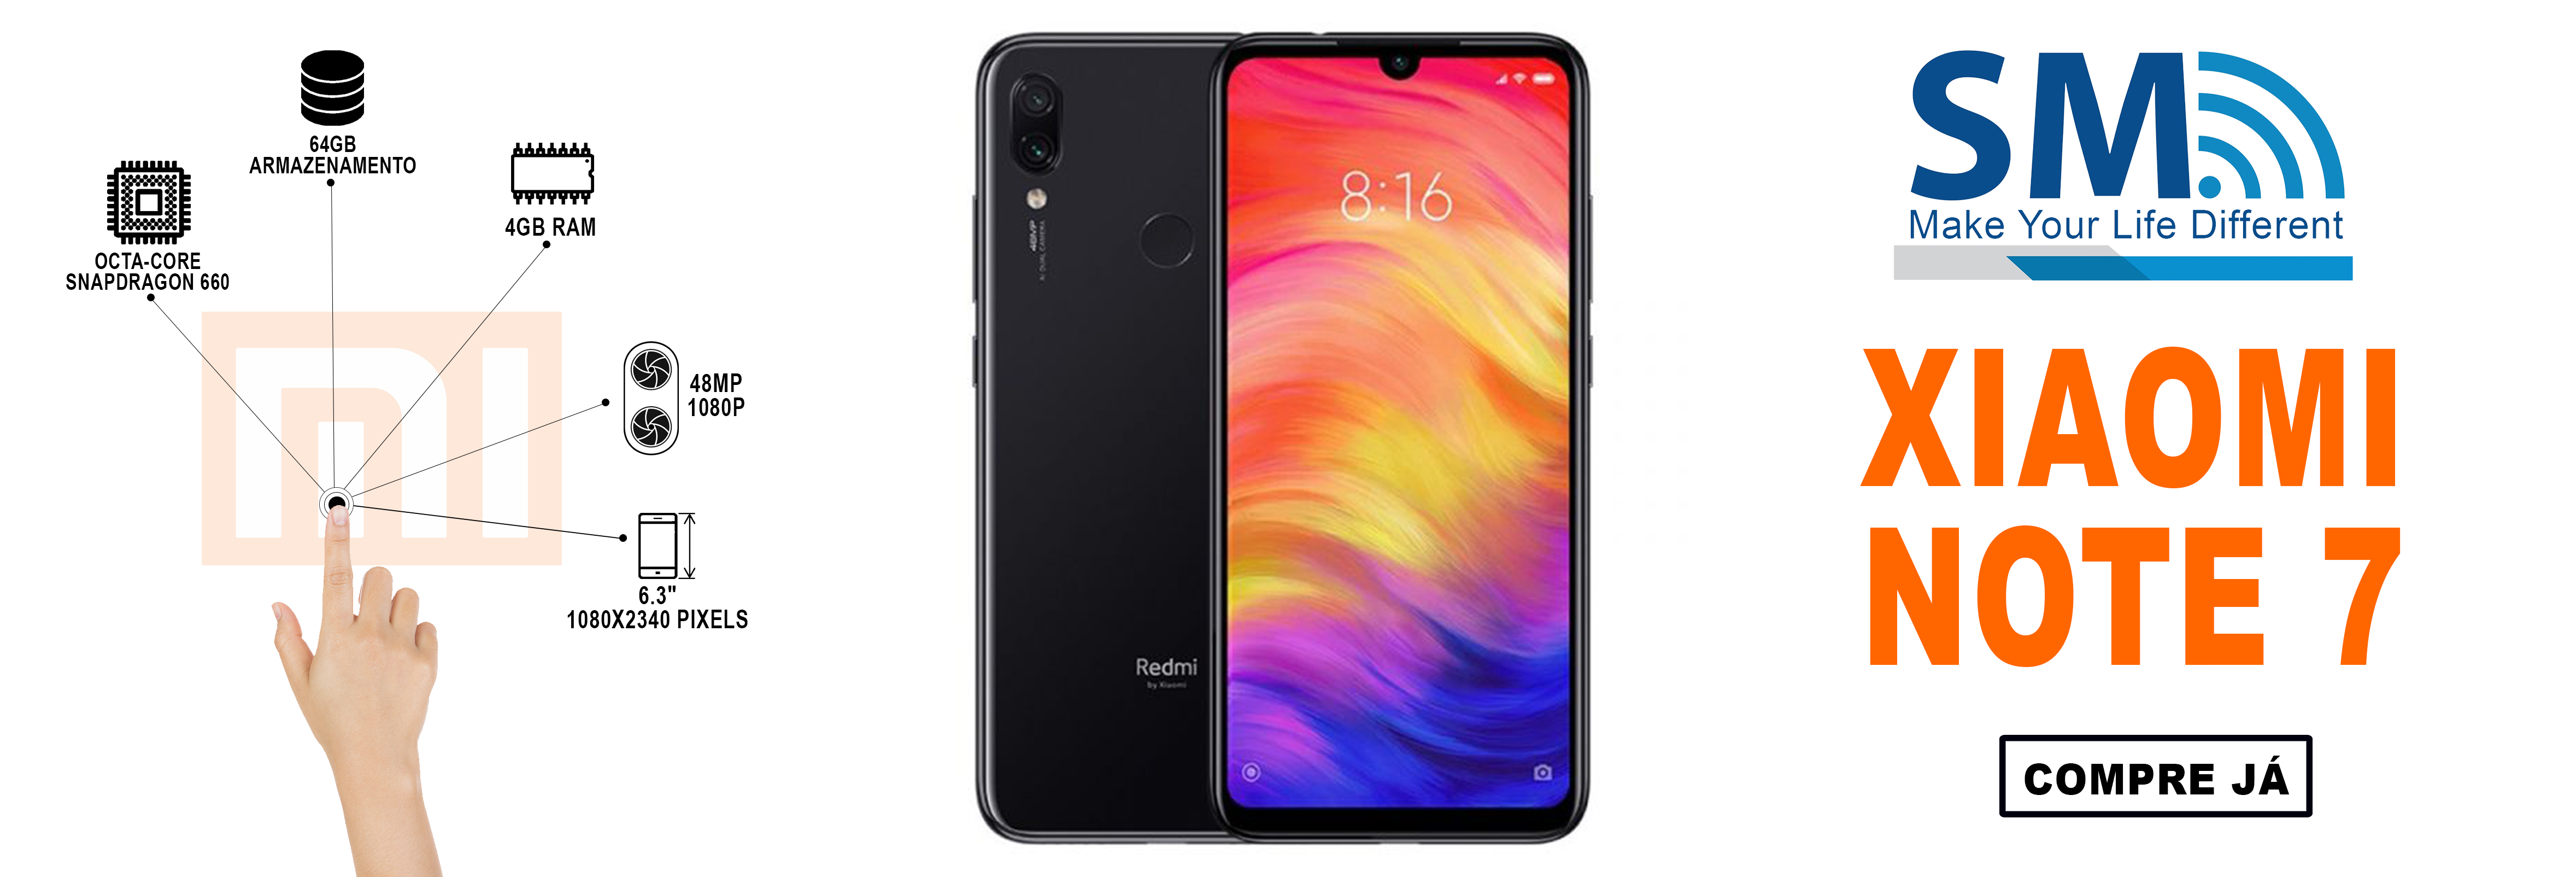 Xiaomi Redmi Note 7 Dual SIM 4GB/64GB Black